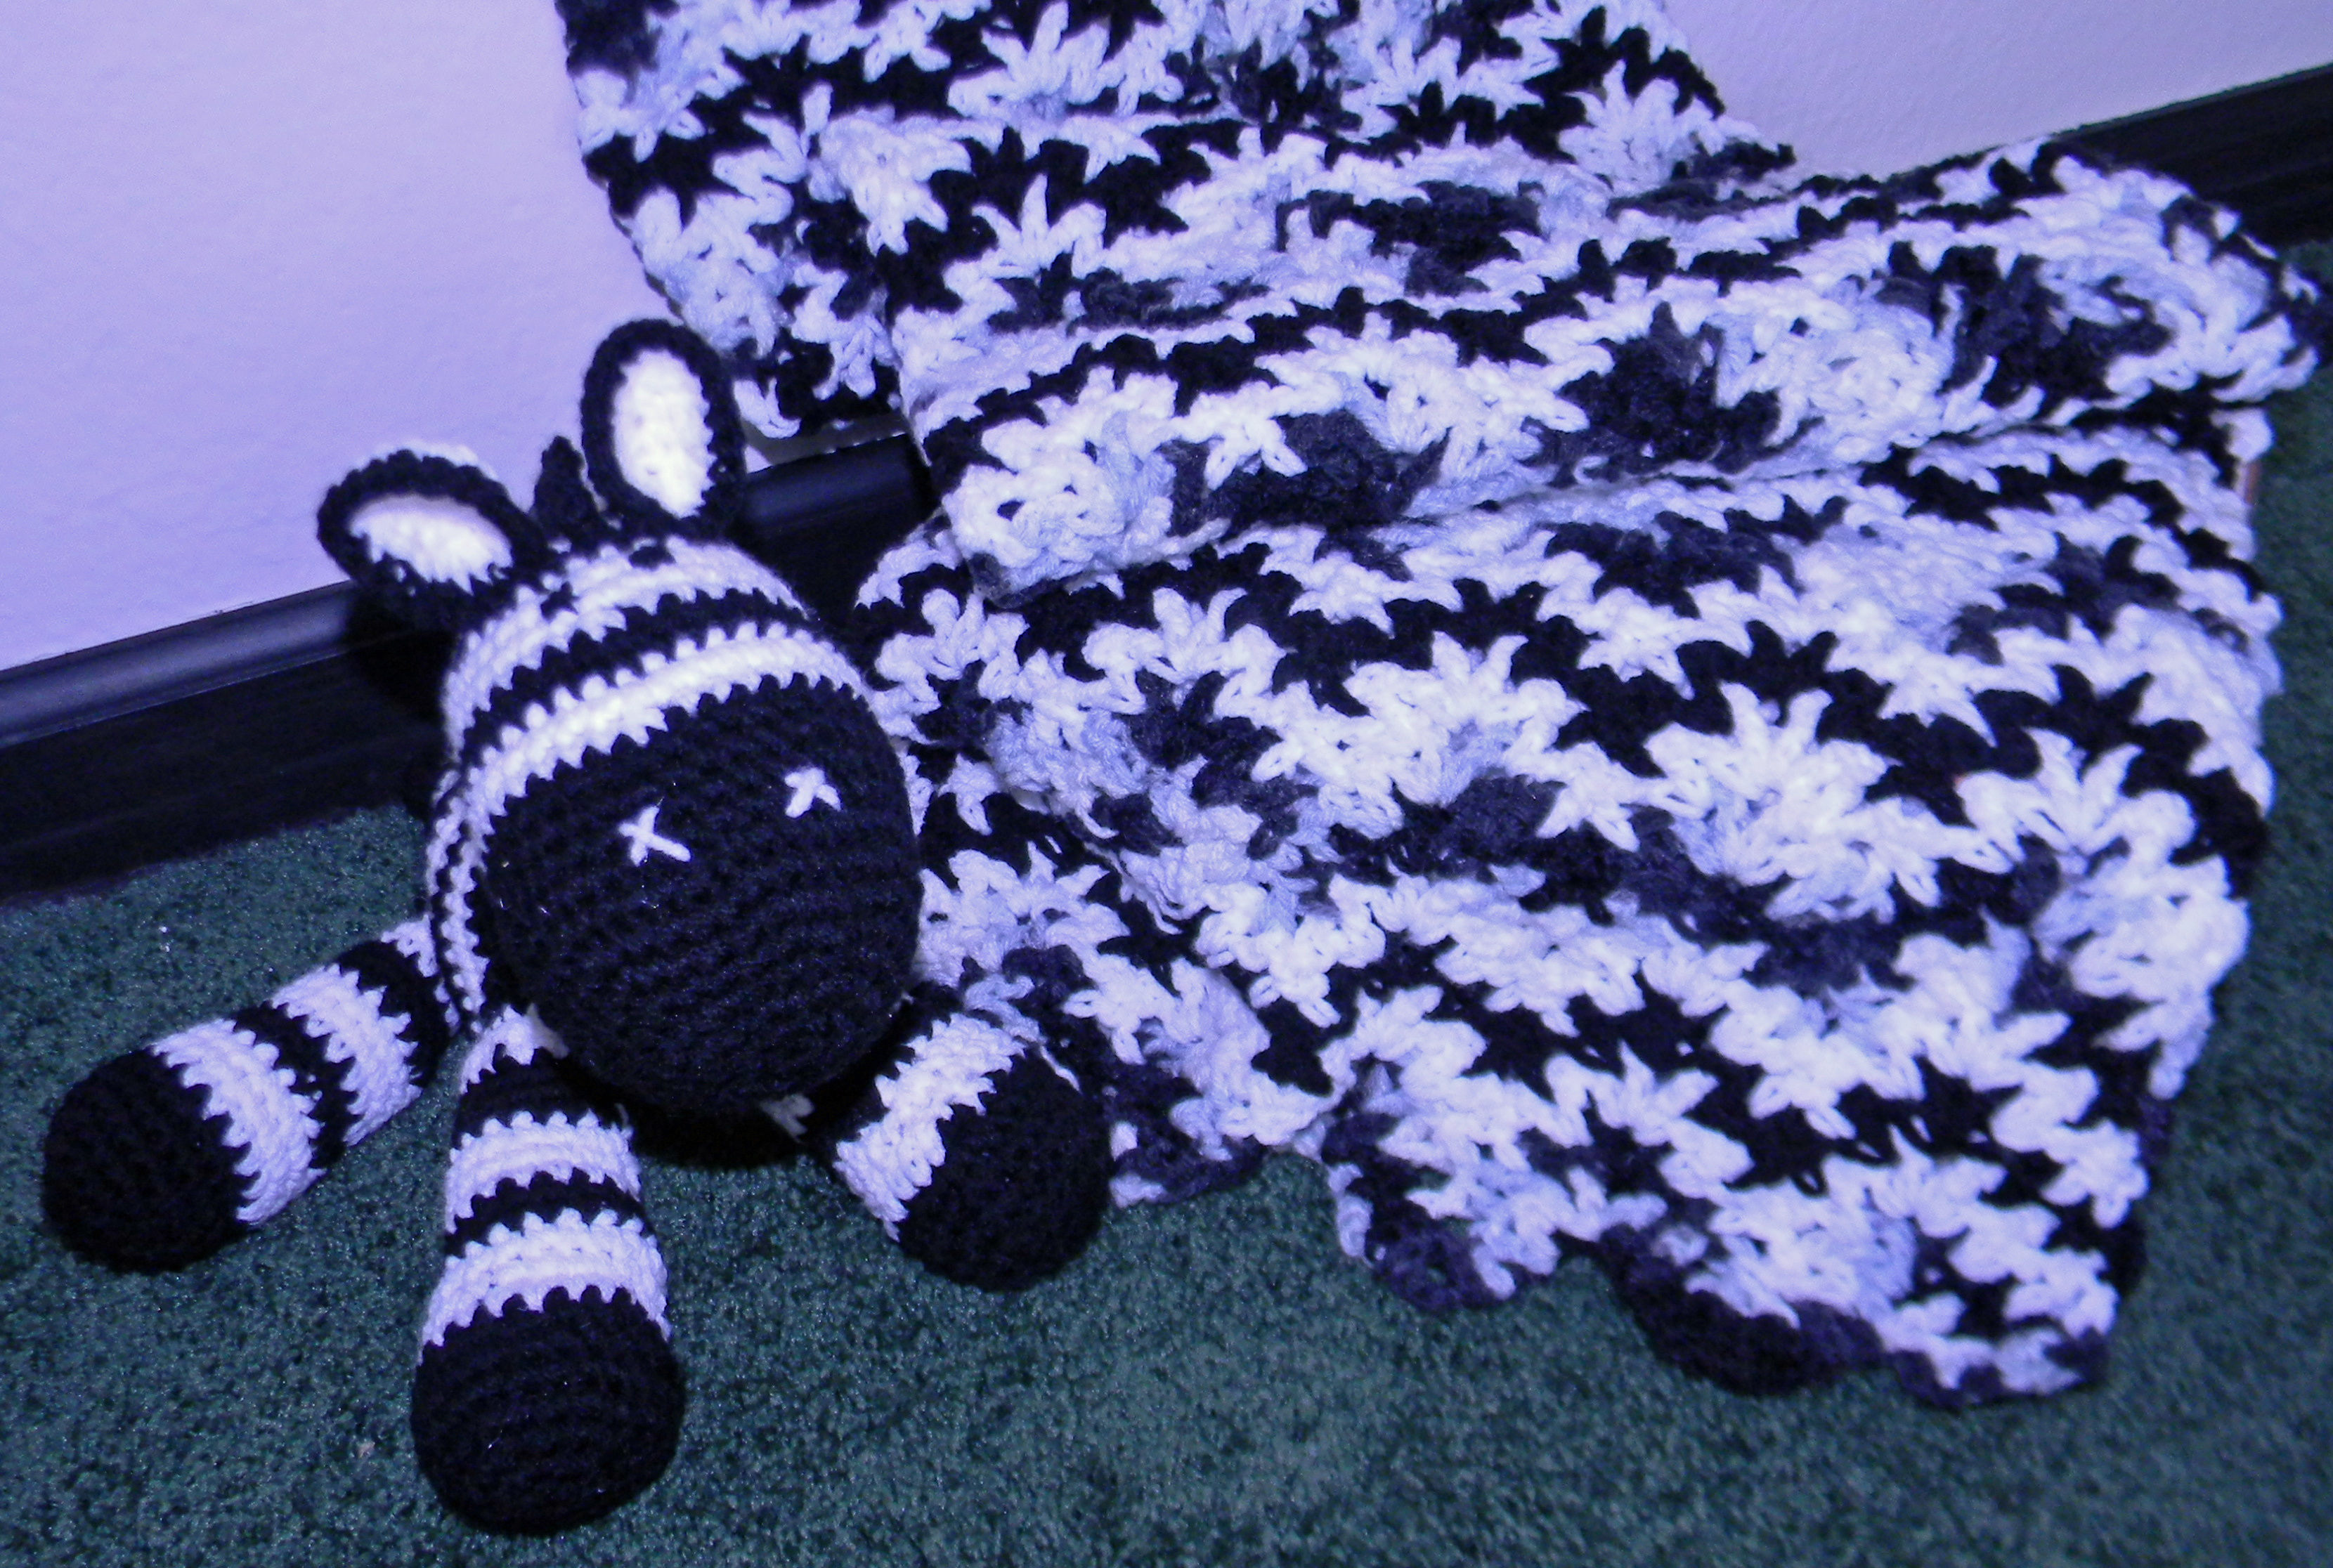 Zebra Print Crochet Afghan Pattern Pakbit For